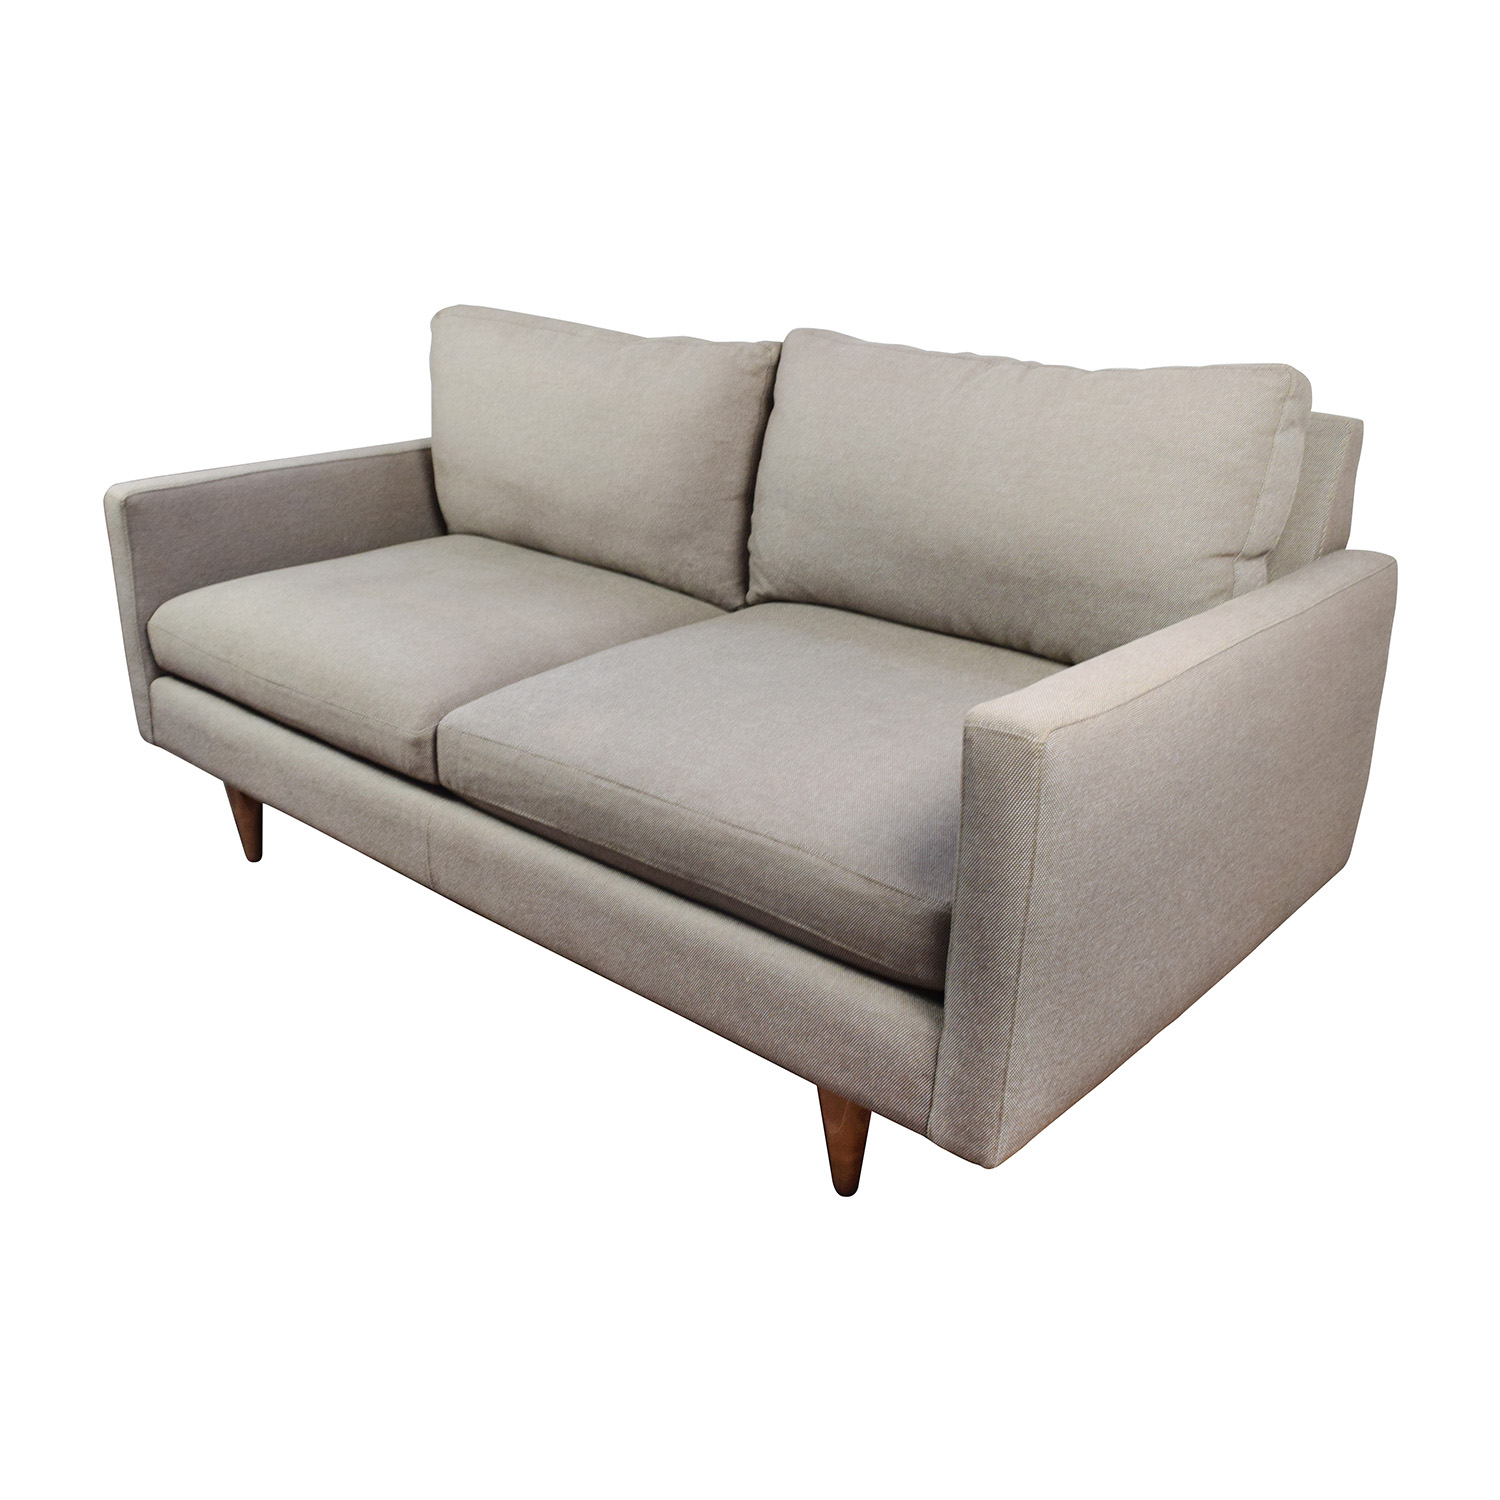 ... Room And Board Room U0026 Board Grey Jasper Sofa Discount ...